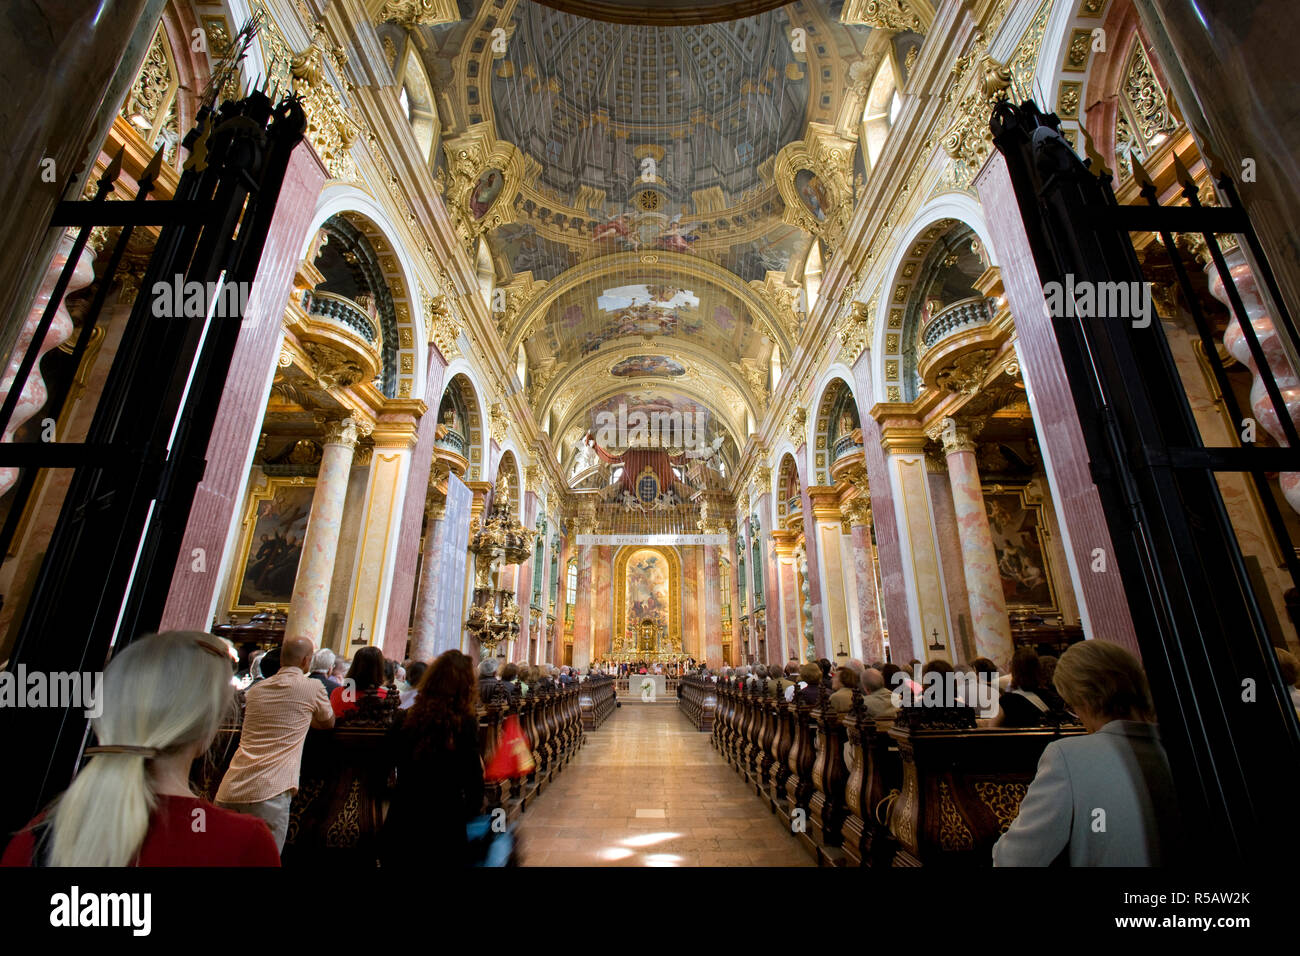 Congregation inside the 17thC Jesuit Church, Vienna, Austria - Stock Image